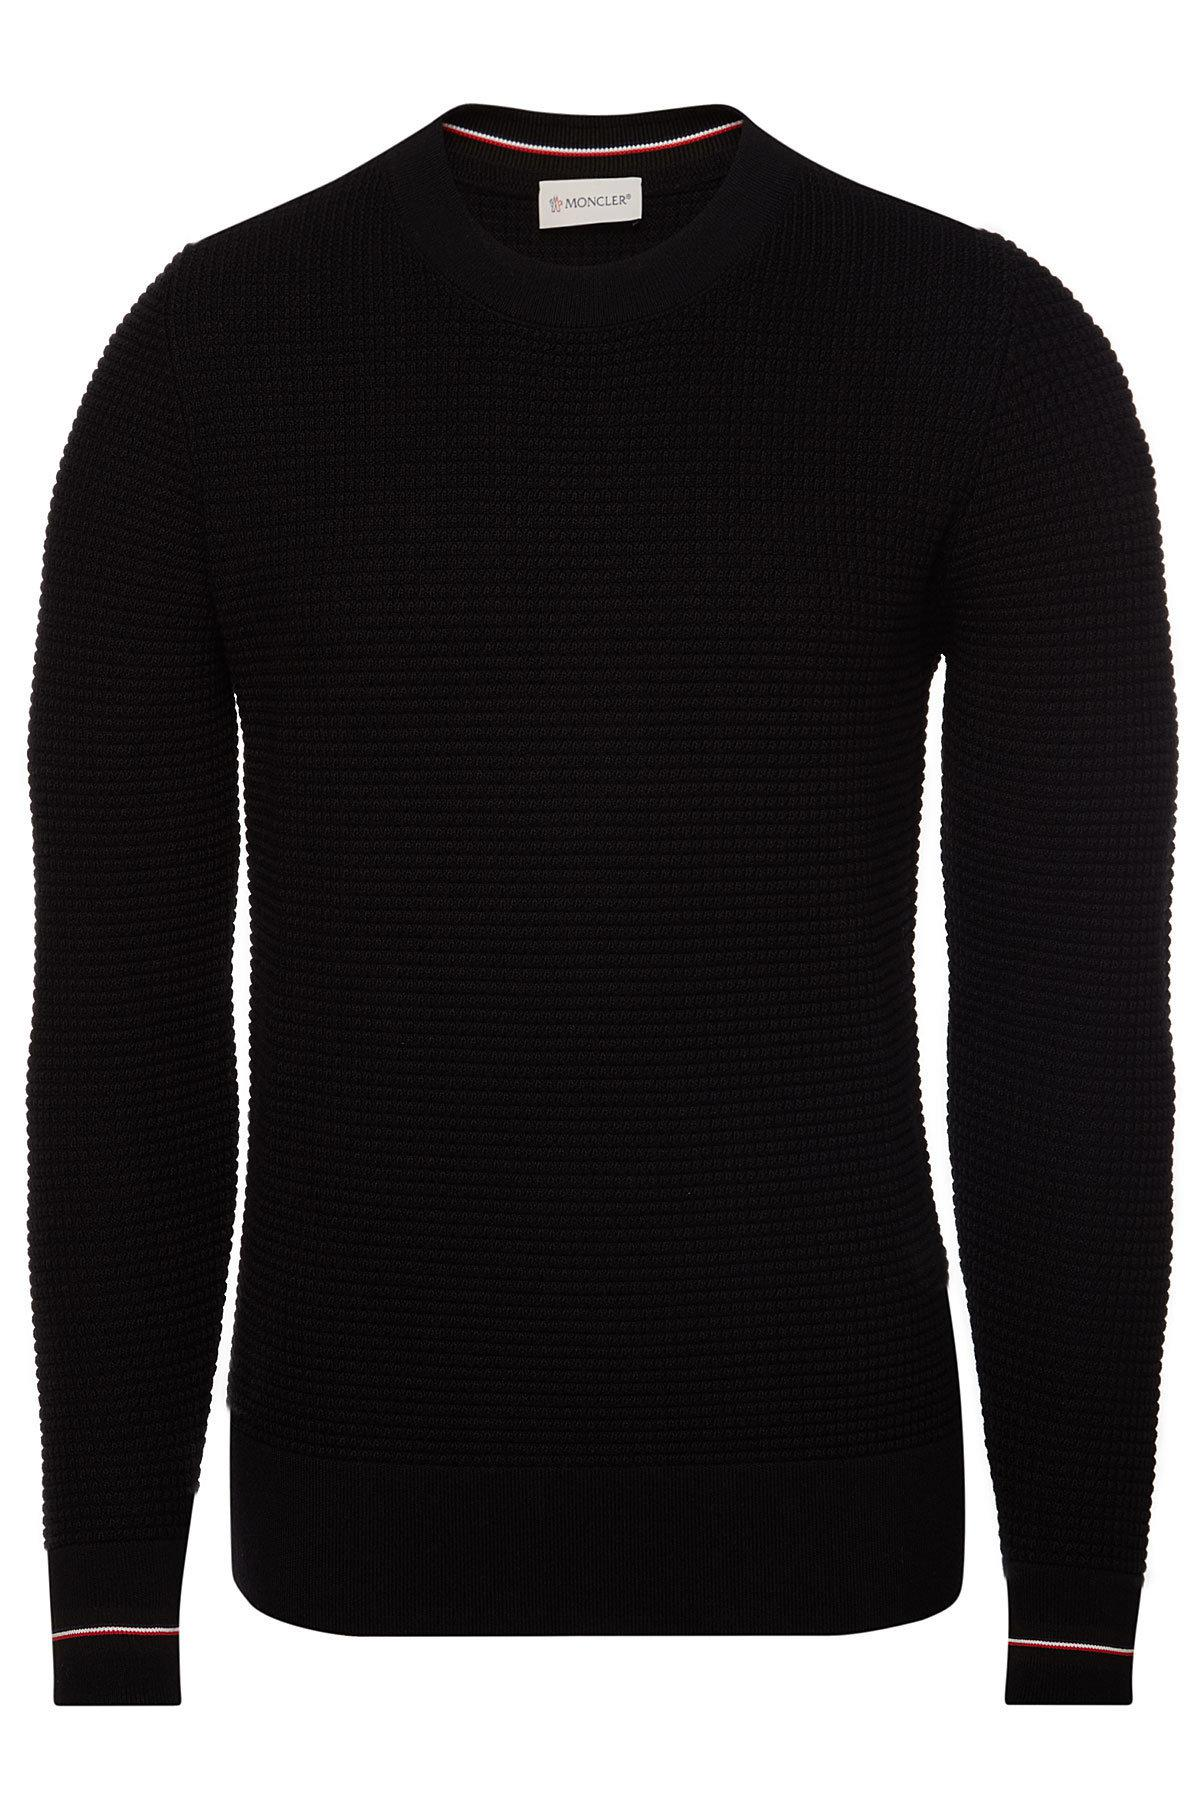 47dc0fa96 Moncler Virgin Wool Pullover in Black for Men - Lyst